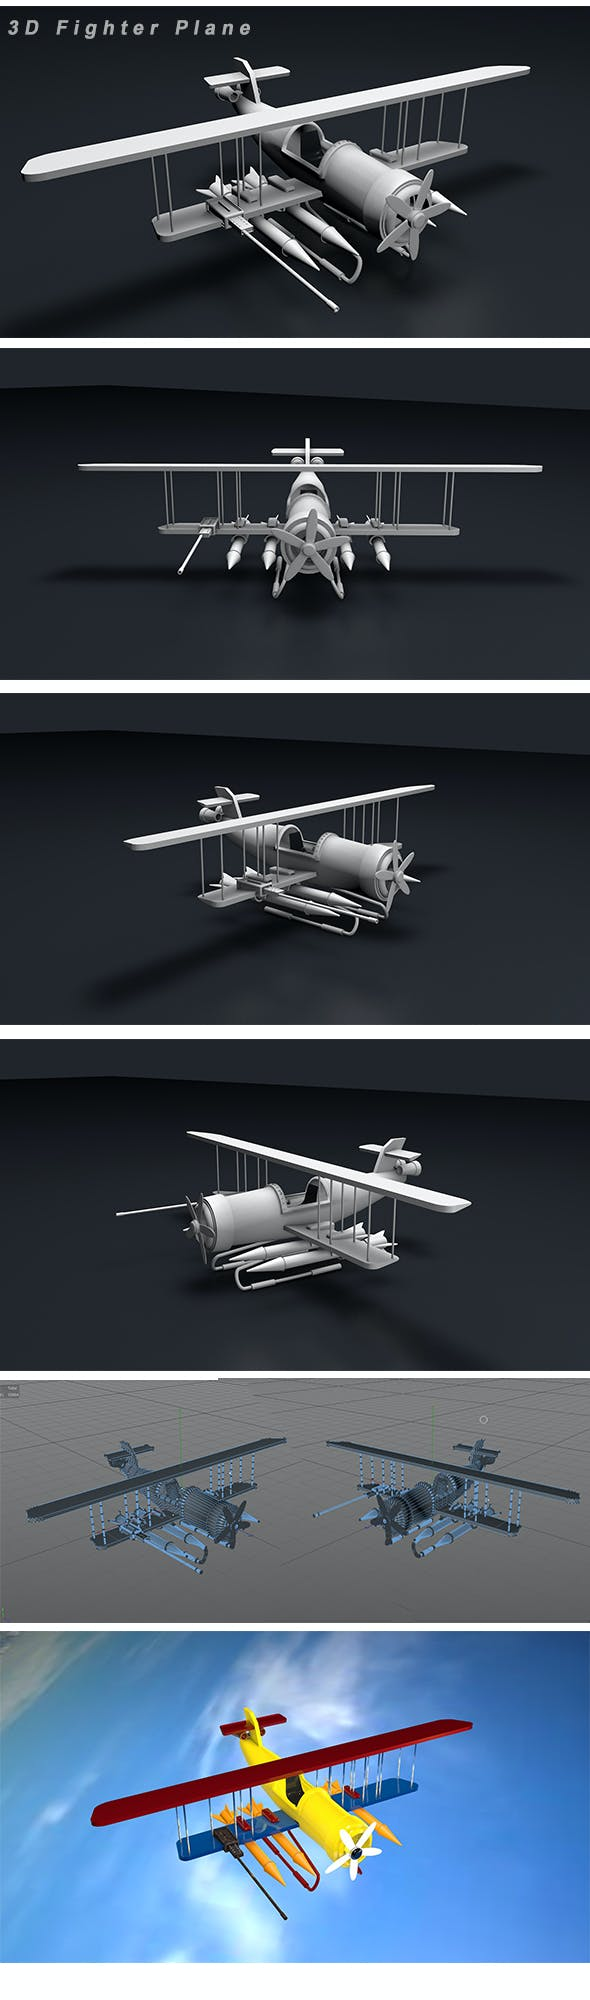 Fighter Plane 3d Modeling - 3DOcean Item for Sale